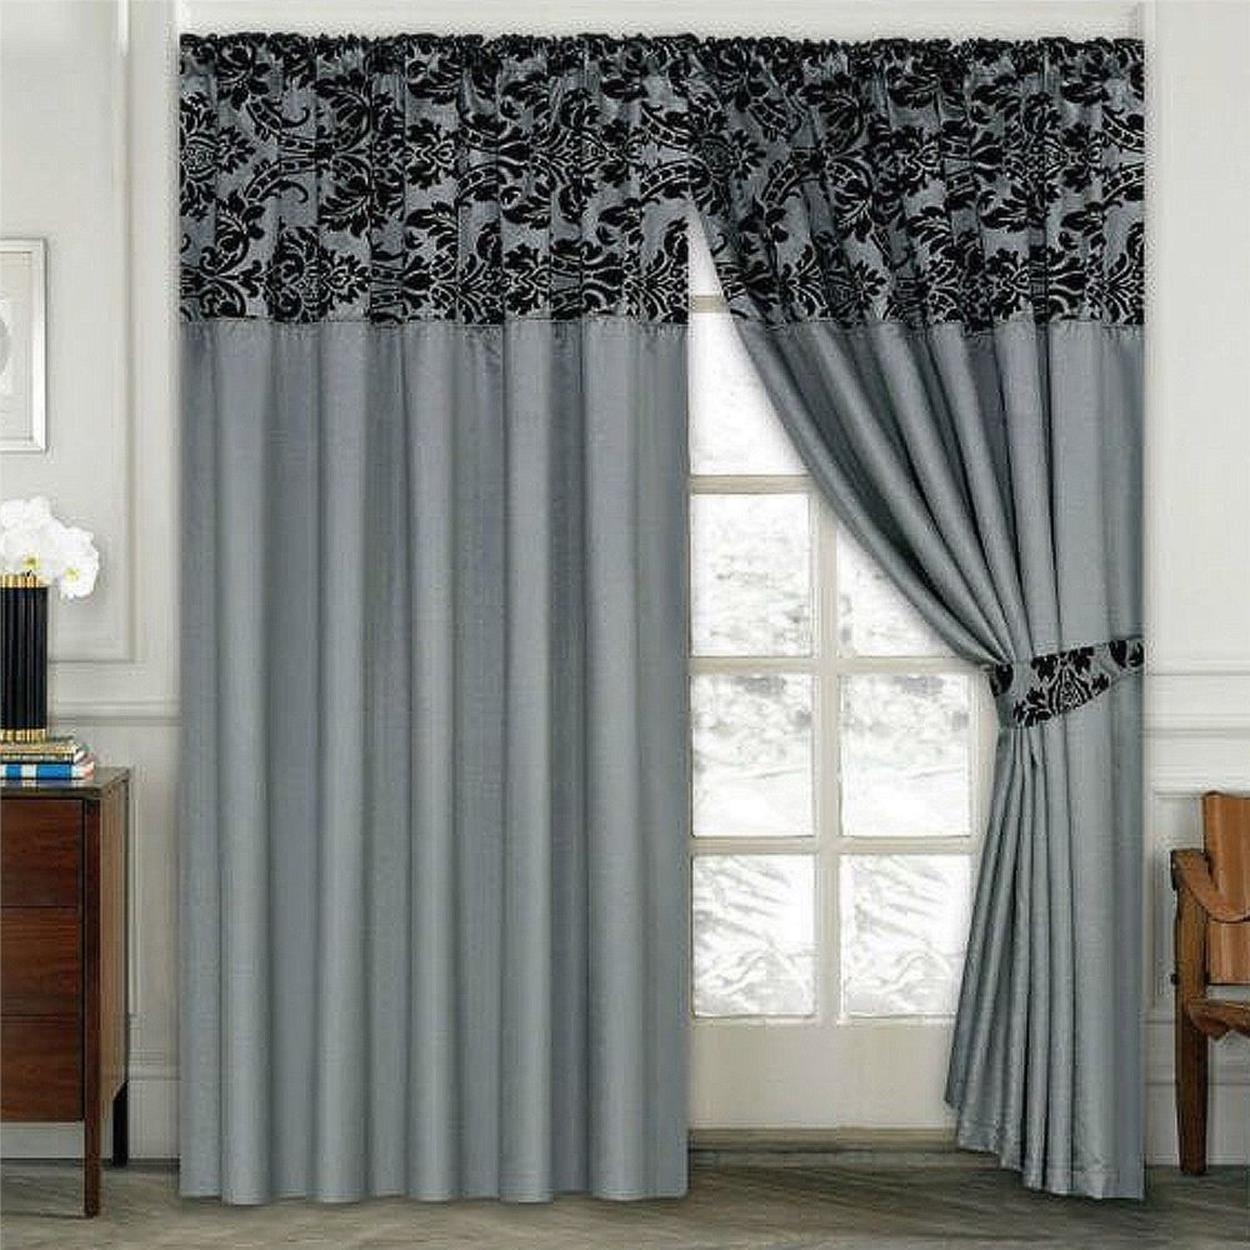 Perfect Cheap Curtains for a Small Apartment 10  DecoRelated